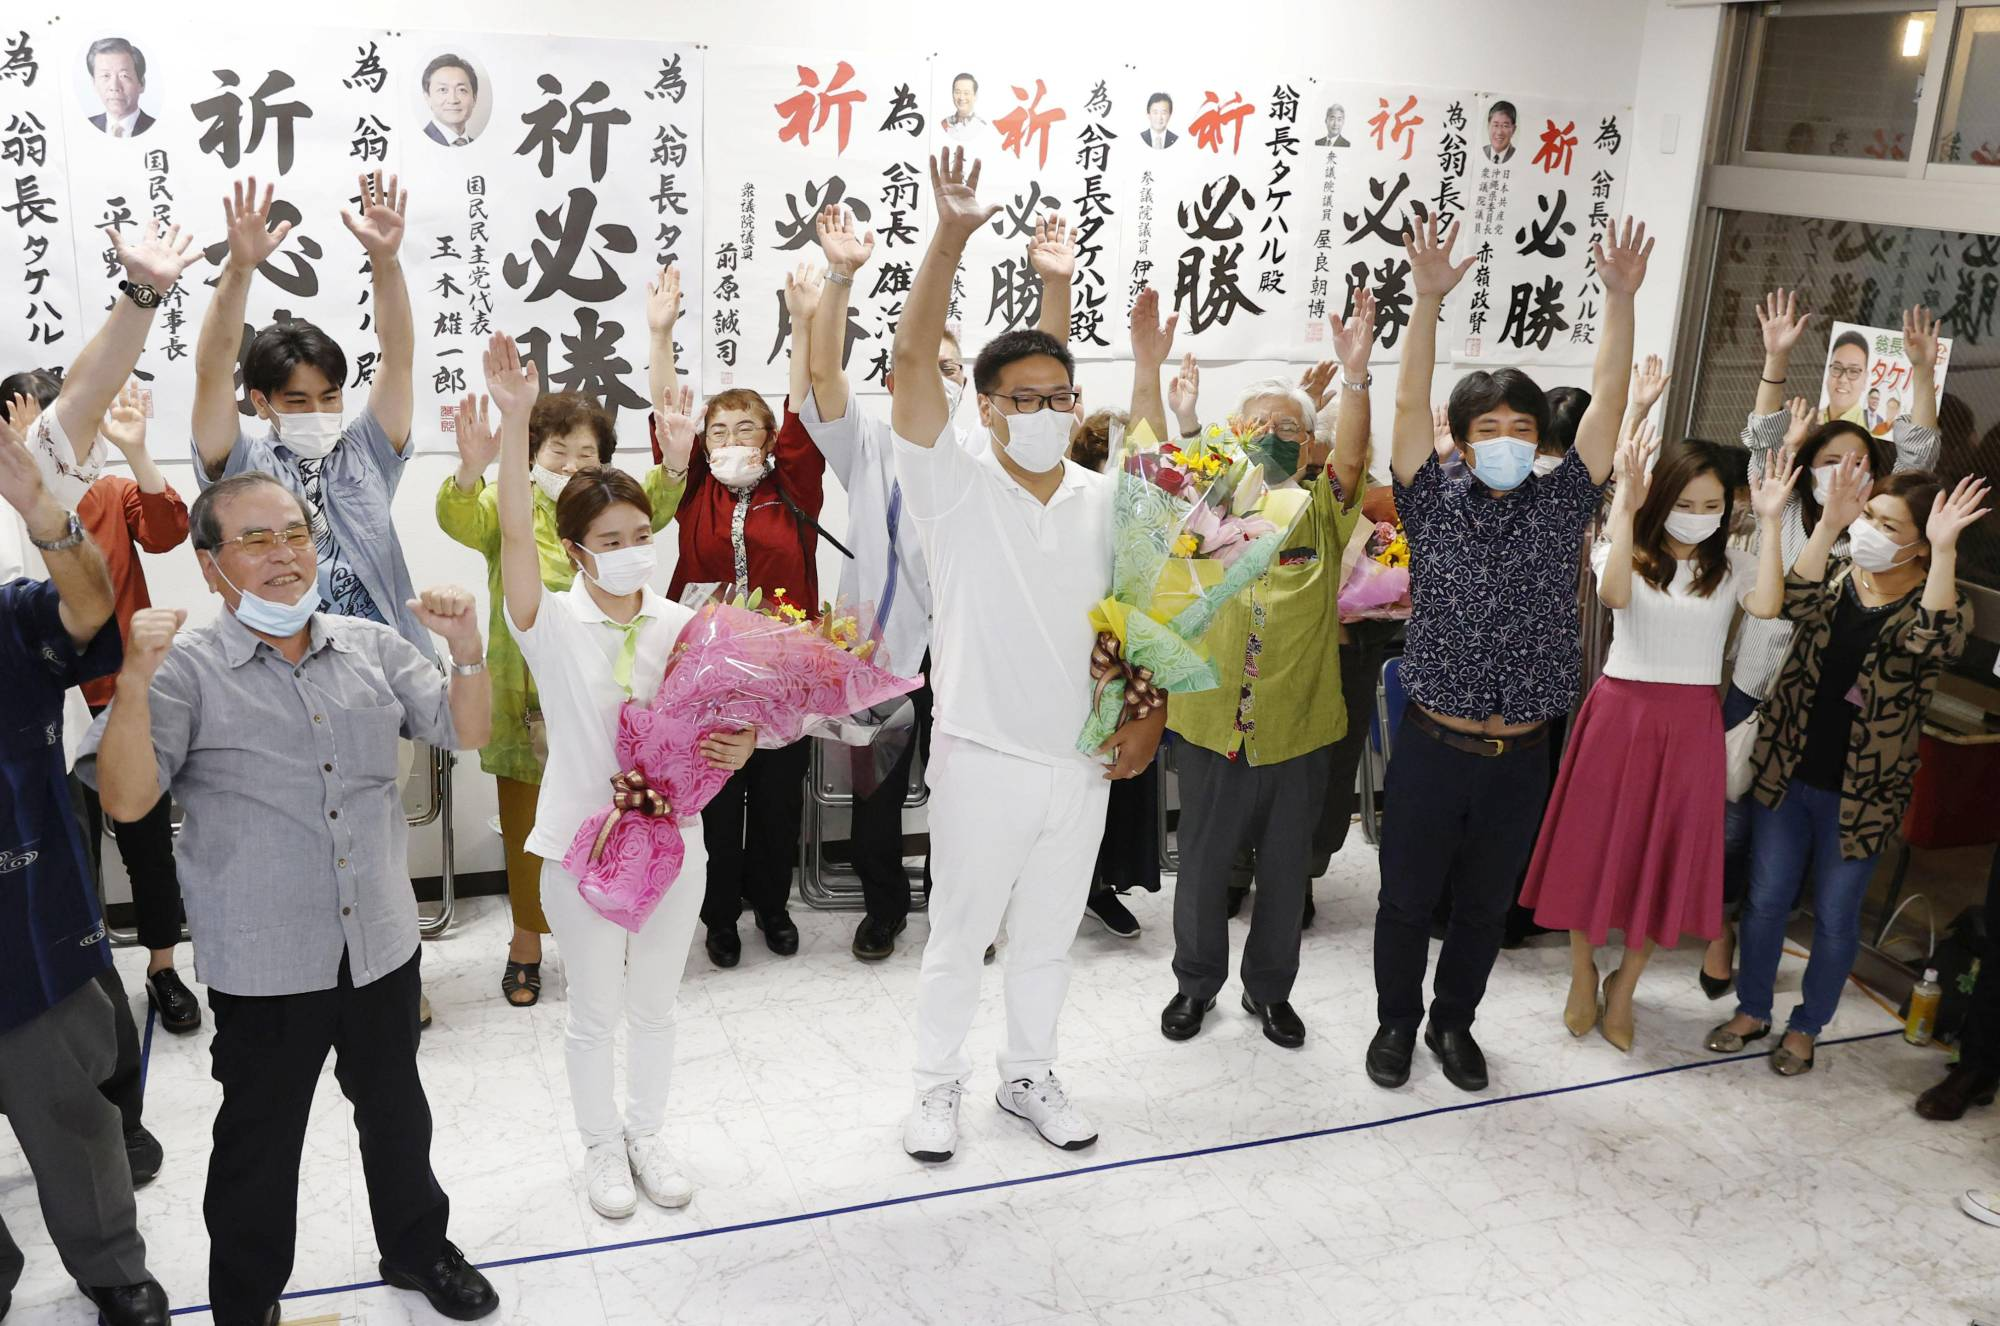 An Okinawa prefectural assembly election candidate (center) supporting Okinawa Gov. Denny Tamaki applauds with supporters Sunday in Naha, Okinawa Prefecture, after winning a seat. | KYODO